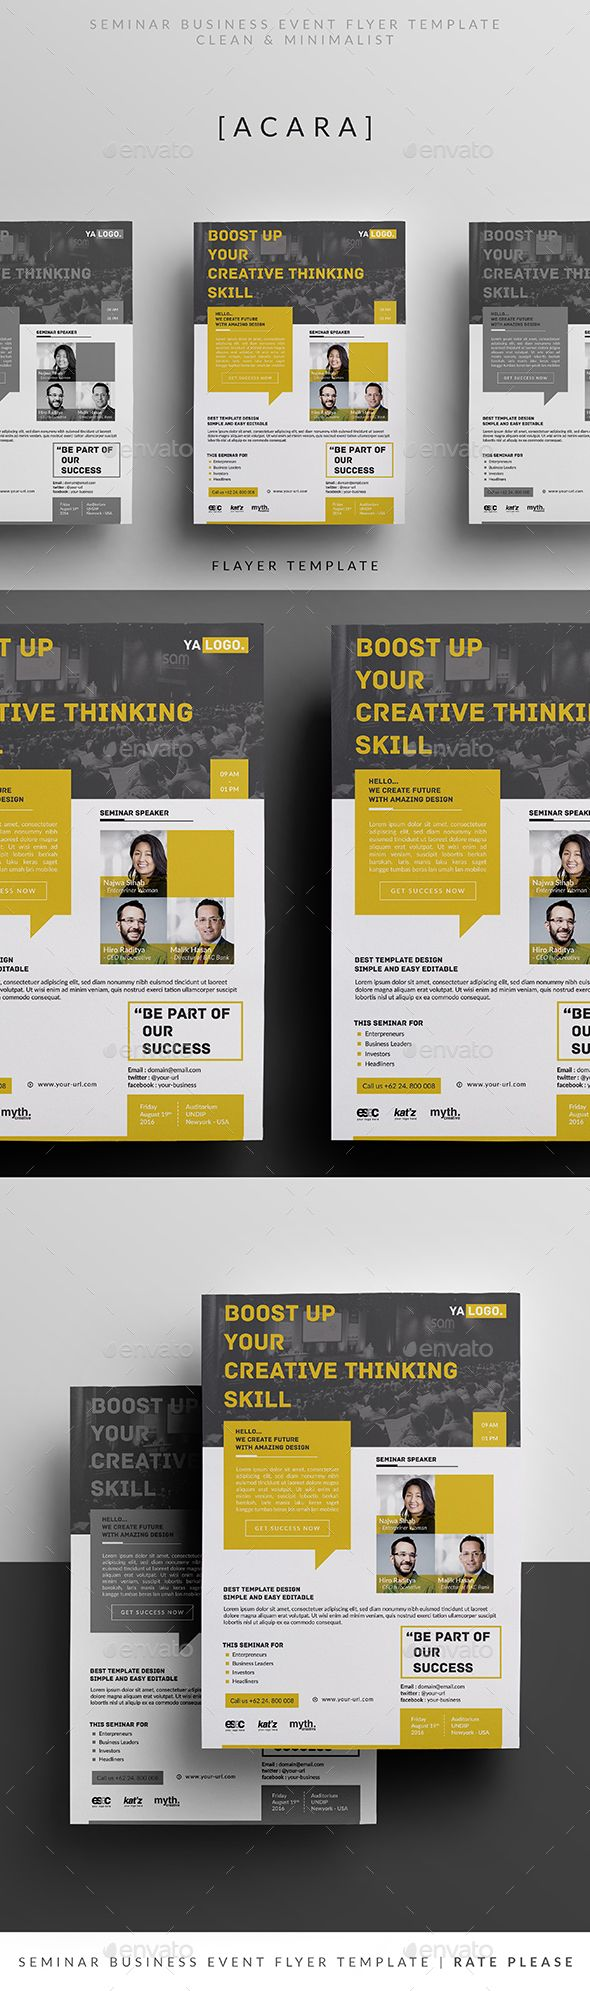 pin by best graphic design on flyer templates pinterest event